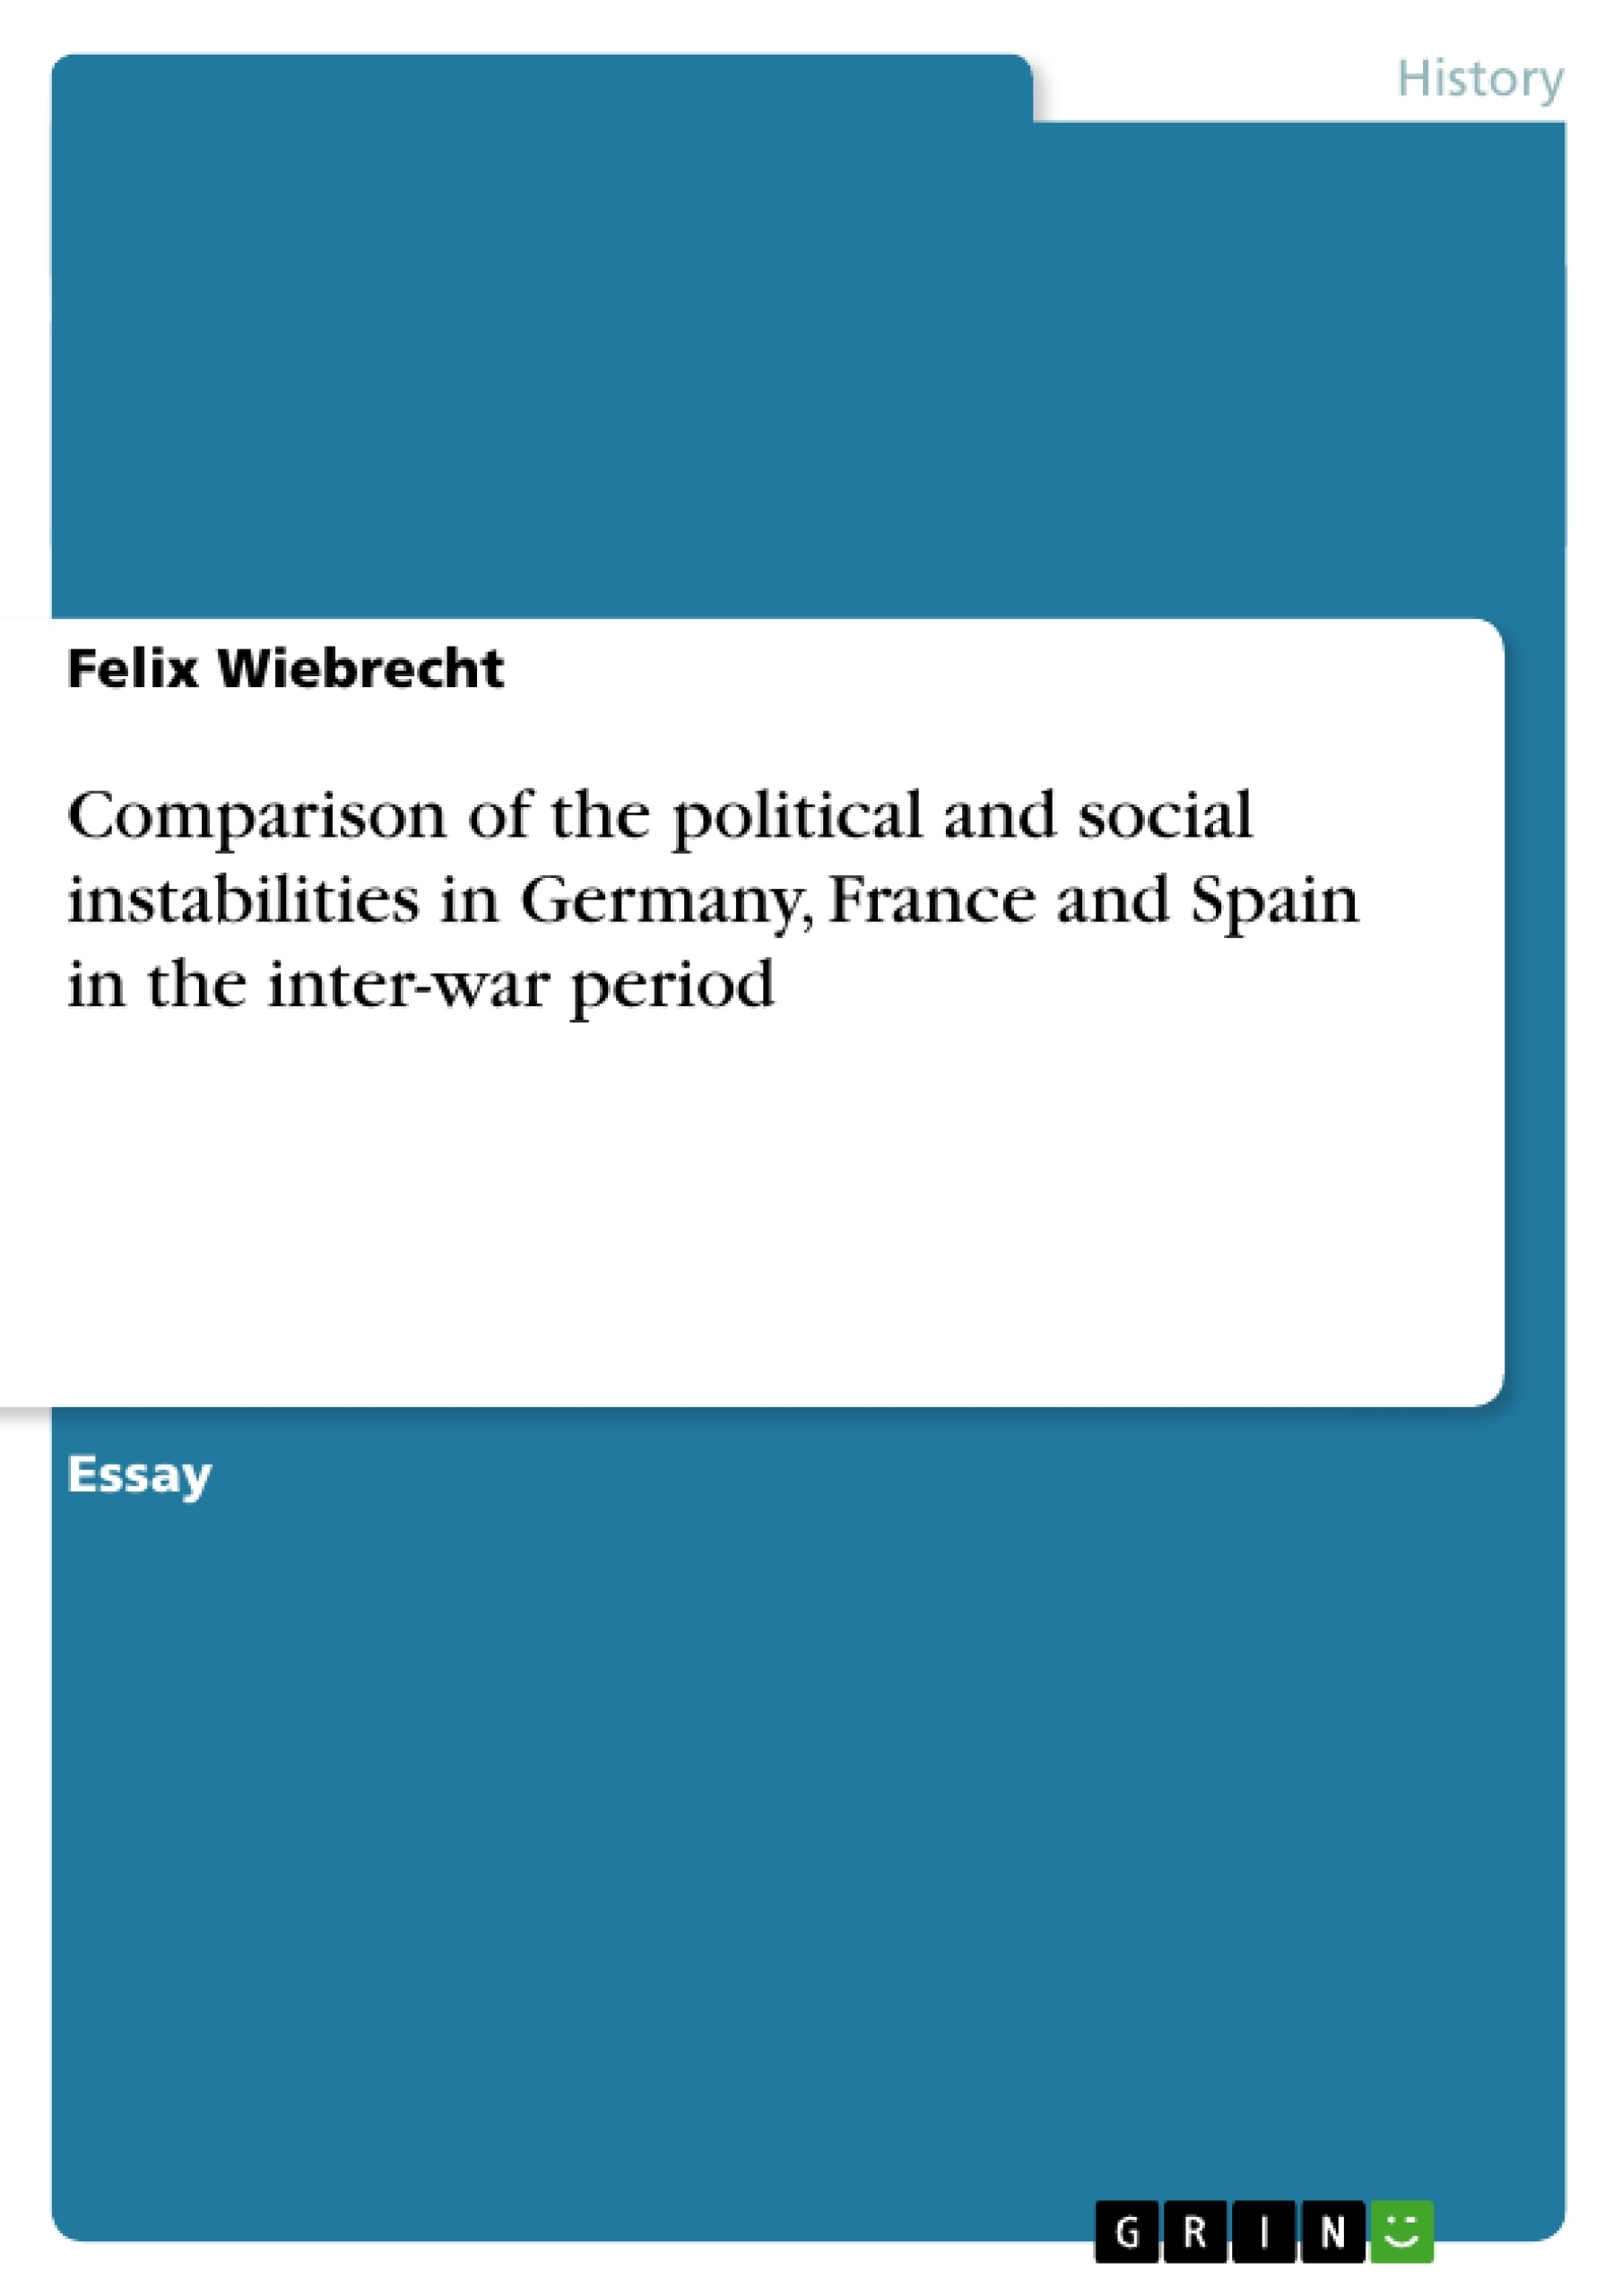 Title: Comparison of the political and social instabilities in Germany, France and Spain in the inter-war period